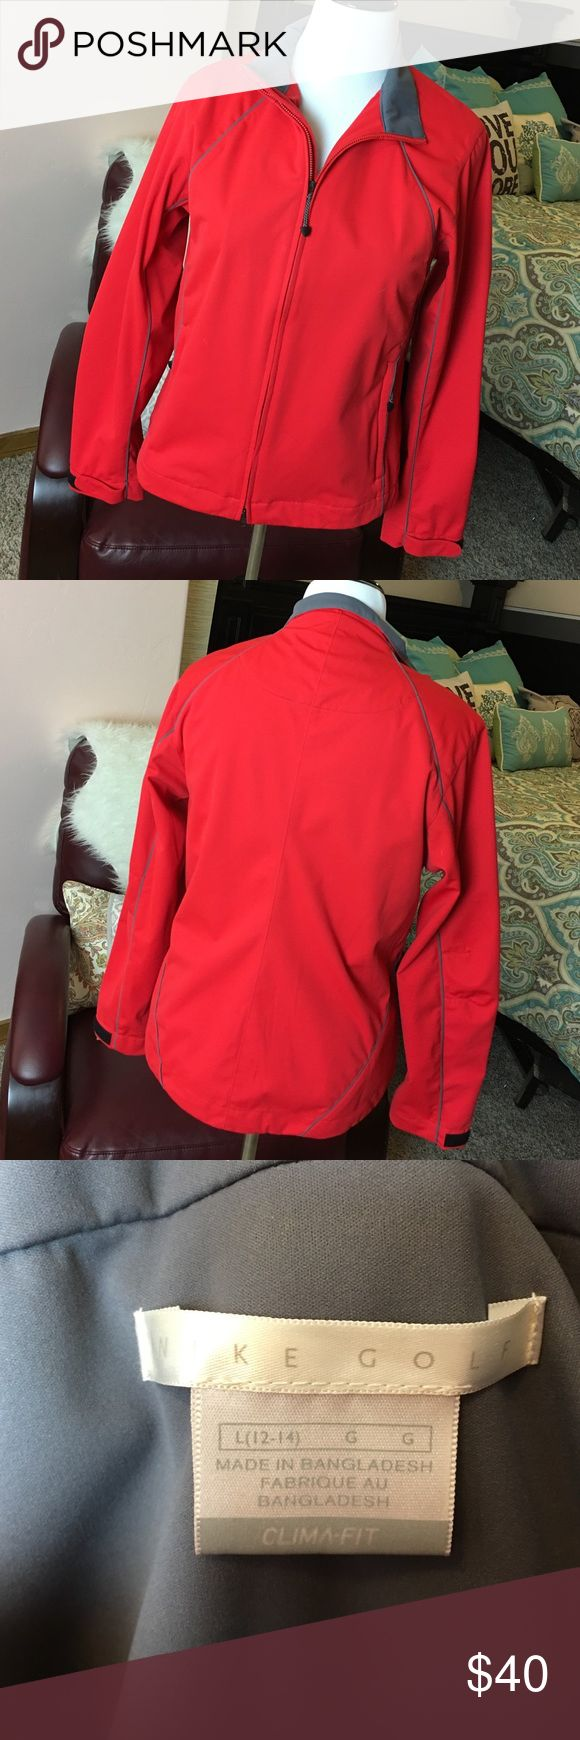 Womens Nike Golf Jacket Womens Nike Golf Jacket - Worn once or twice. Great light weight, water proof, running jacket. - I ❤ OFFERS! Nike Jackets & Coats Utility Jackets